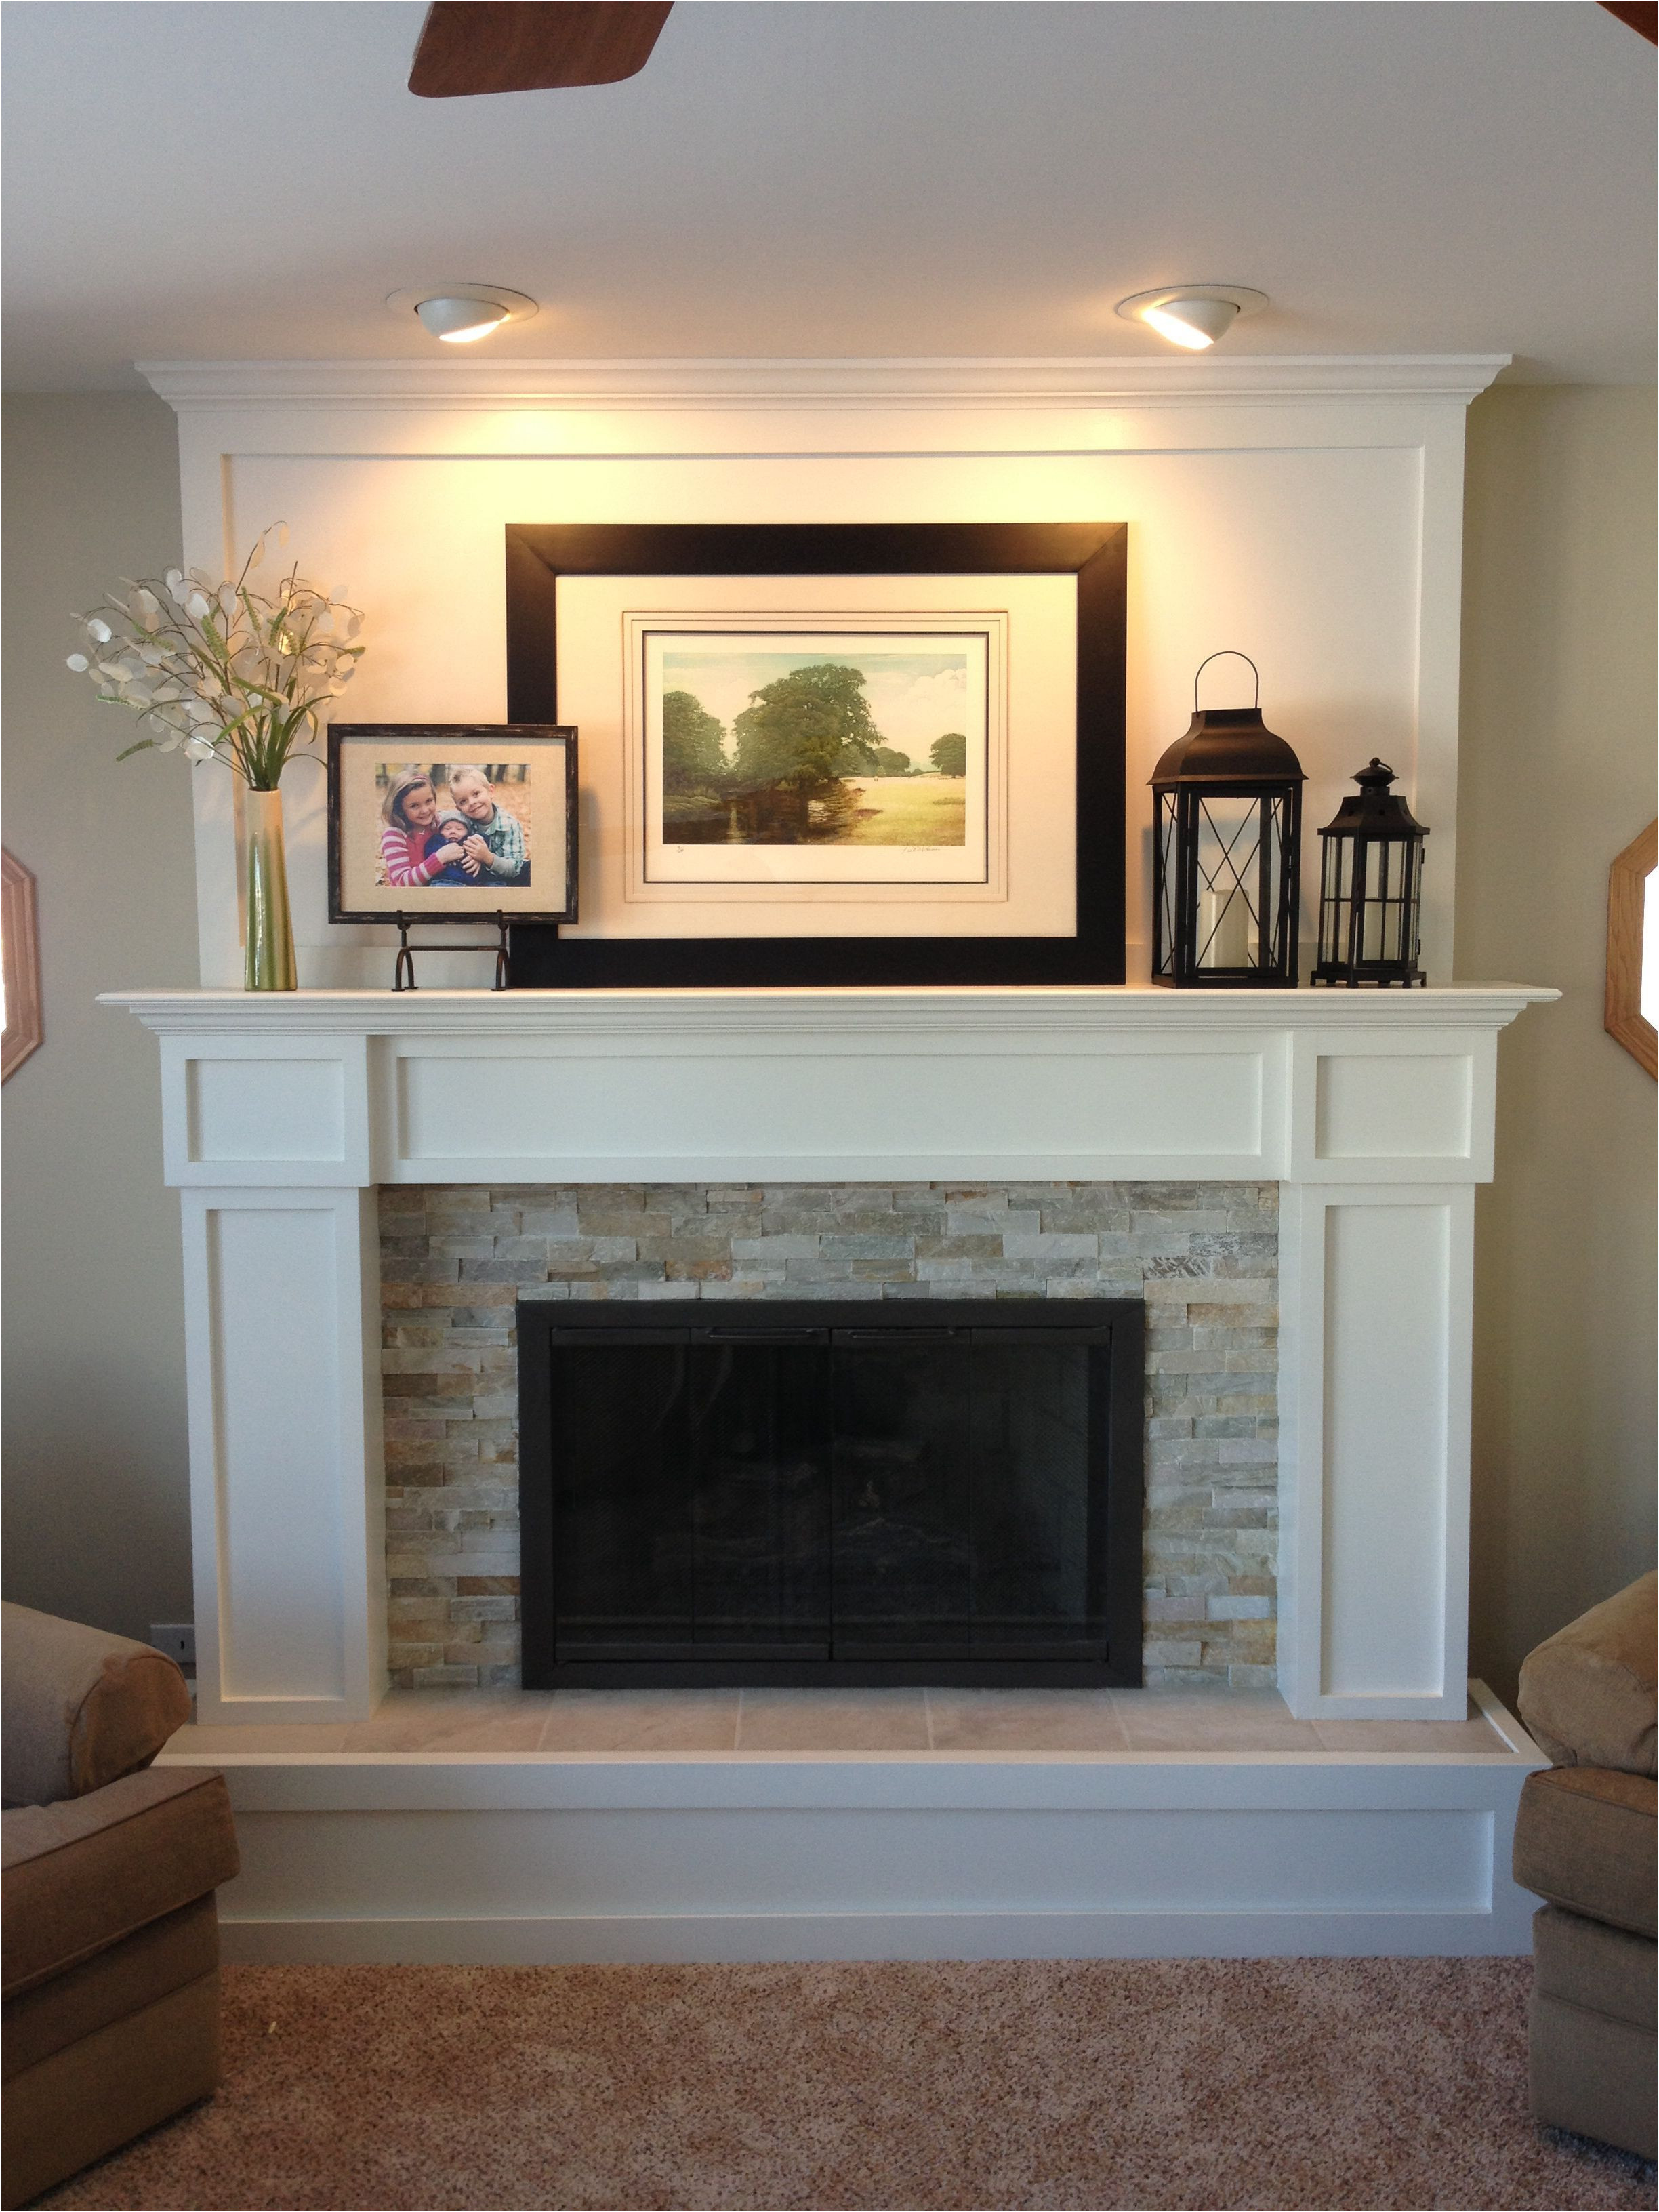 New Ideas for A Corner Fireplace